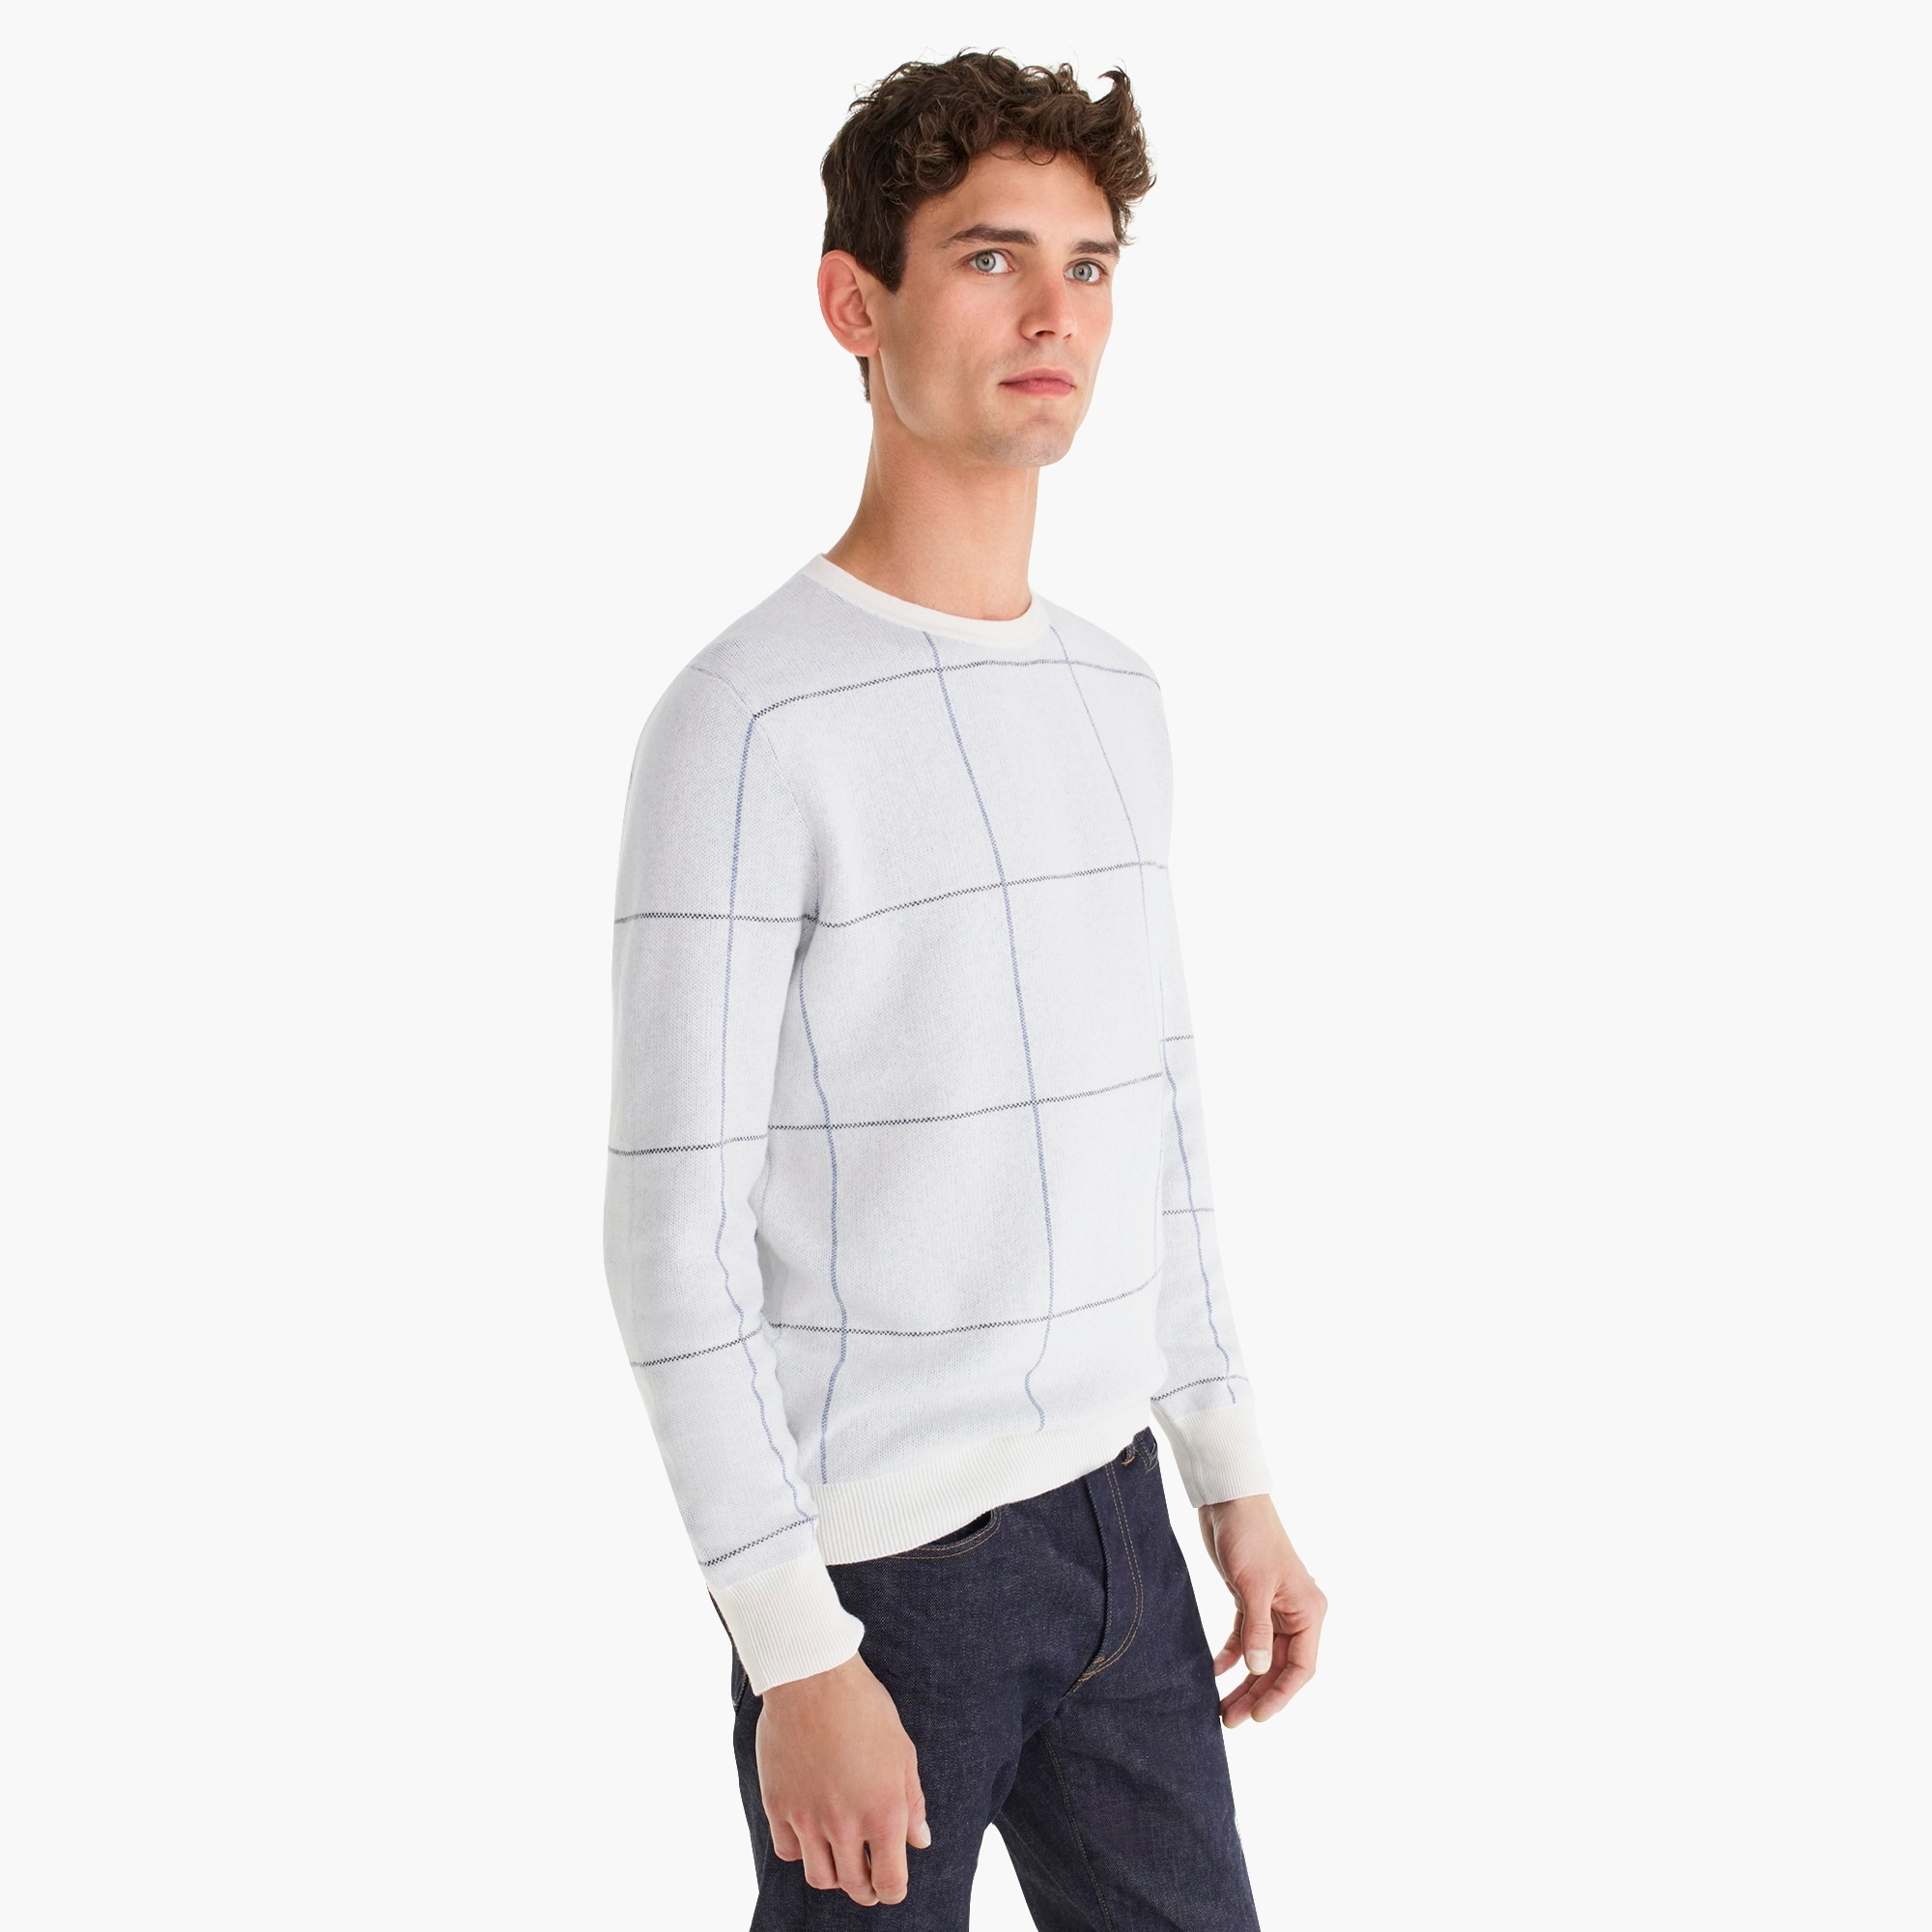 Image 2 for Cotton-cashmere two-color crewneck sweater in windowpane